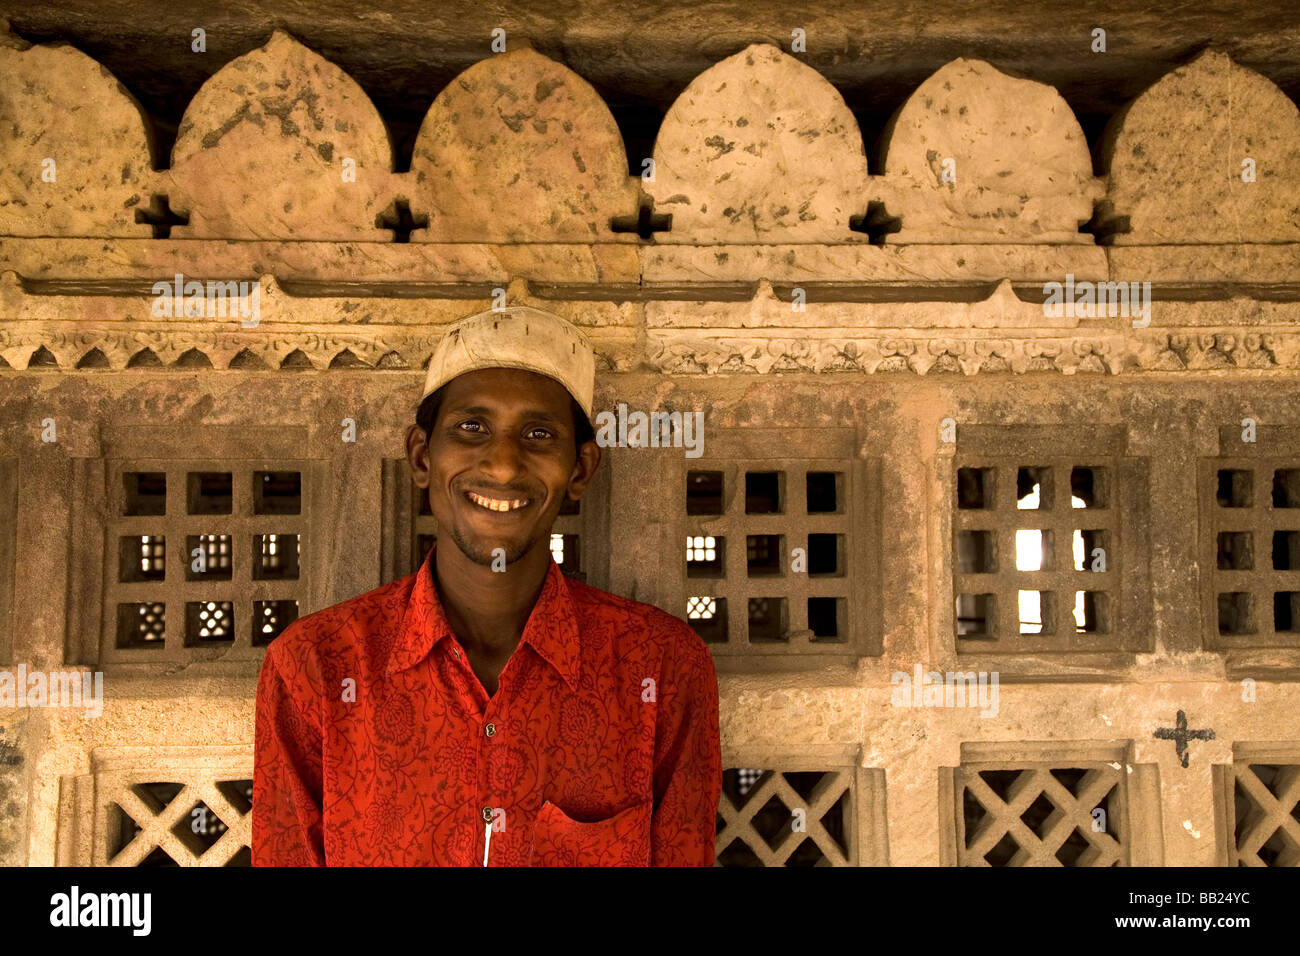 A Muslim on the rooftop of the Jama Masjid mosque in the city of Ahmedabad, Gujarat. - Stock Image